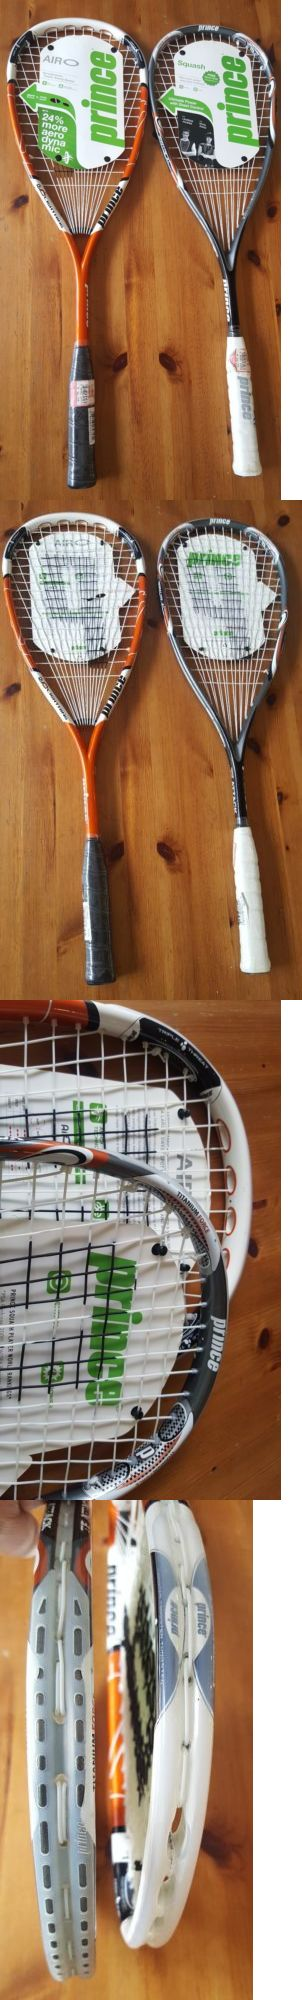 Squash 62166: Prince Squash Rackets Lot Triple Threat Air Lightning And Tf Attack Titanium Force -> BUY IT NOW ONLY: $59.99 on eBay!